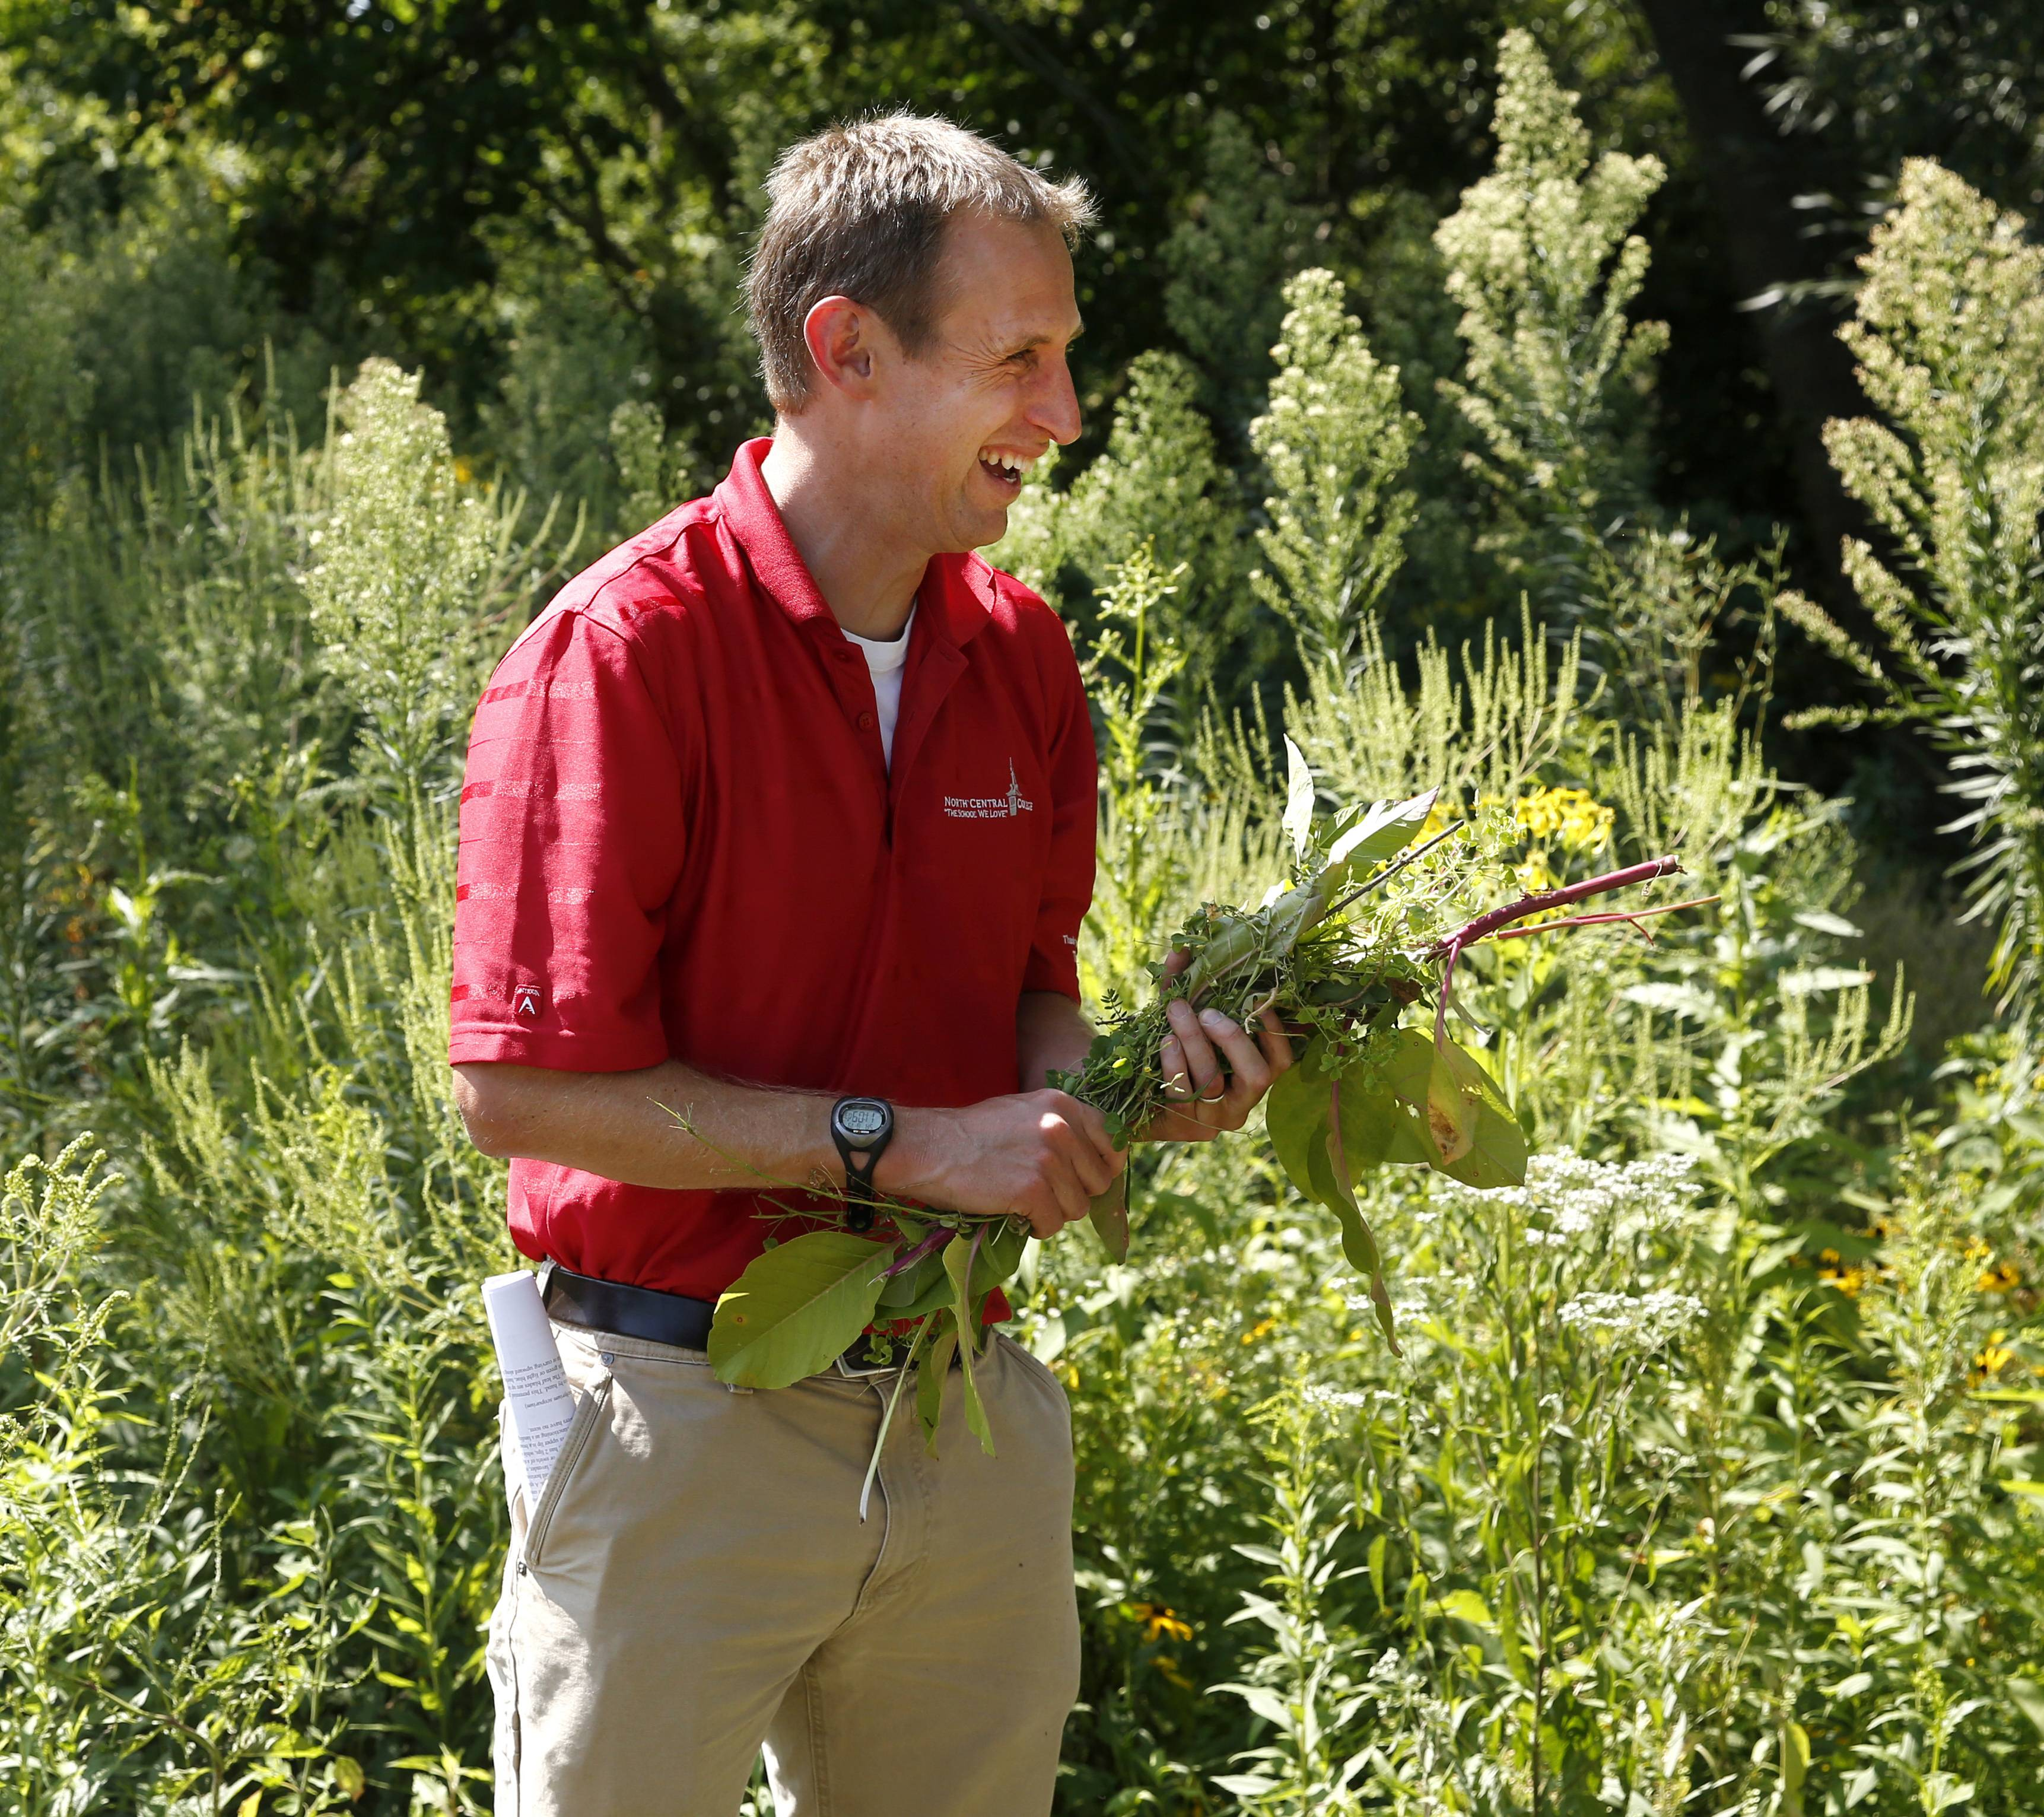 Greg Ruthig, associate professor of biology at North Central College, is encouraged to be planting more native prairie plants between the school's stadium and the DuPage River. Above, Ruthig is holding an invasive plant, pokeweed, that he pulled out Saturday.